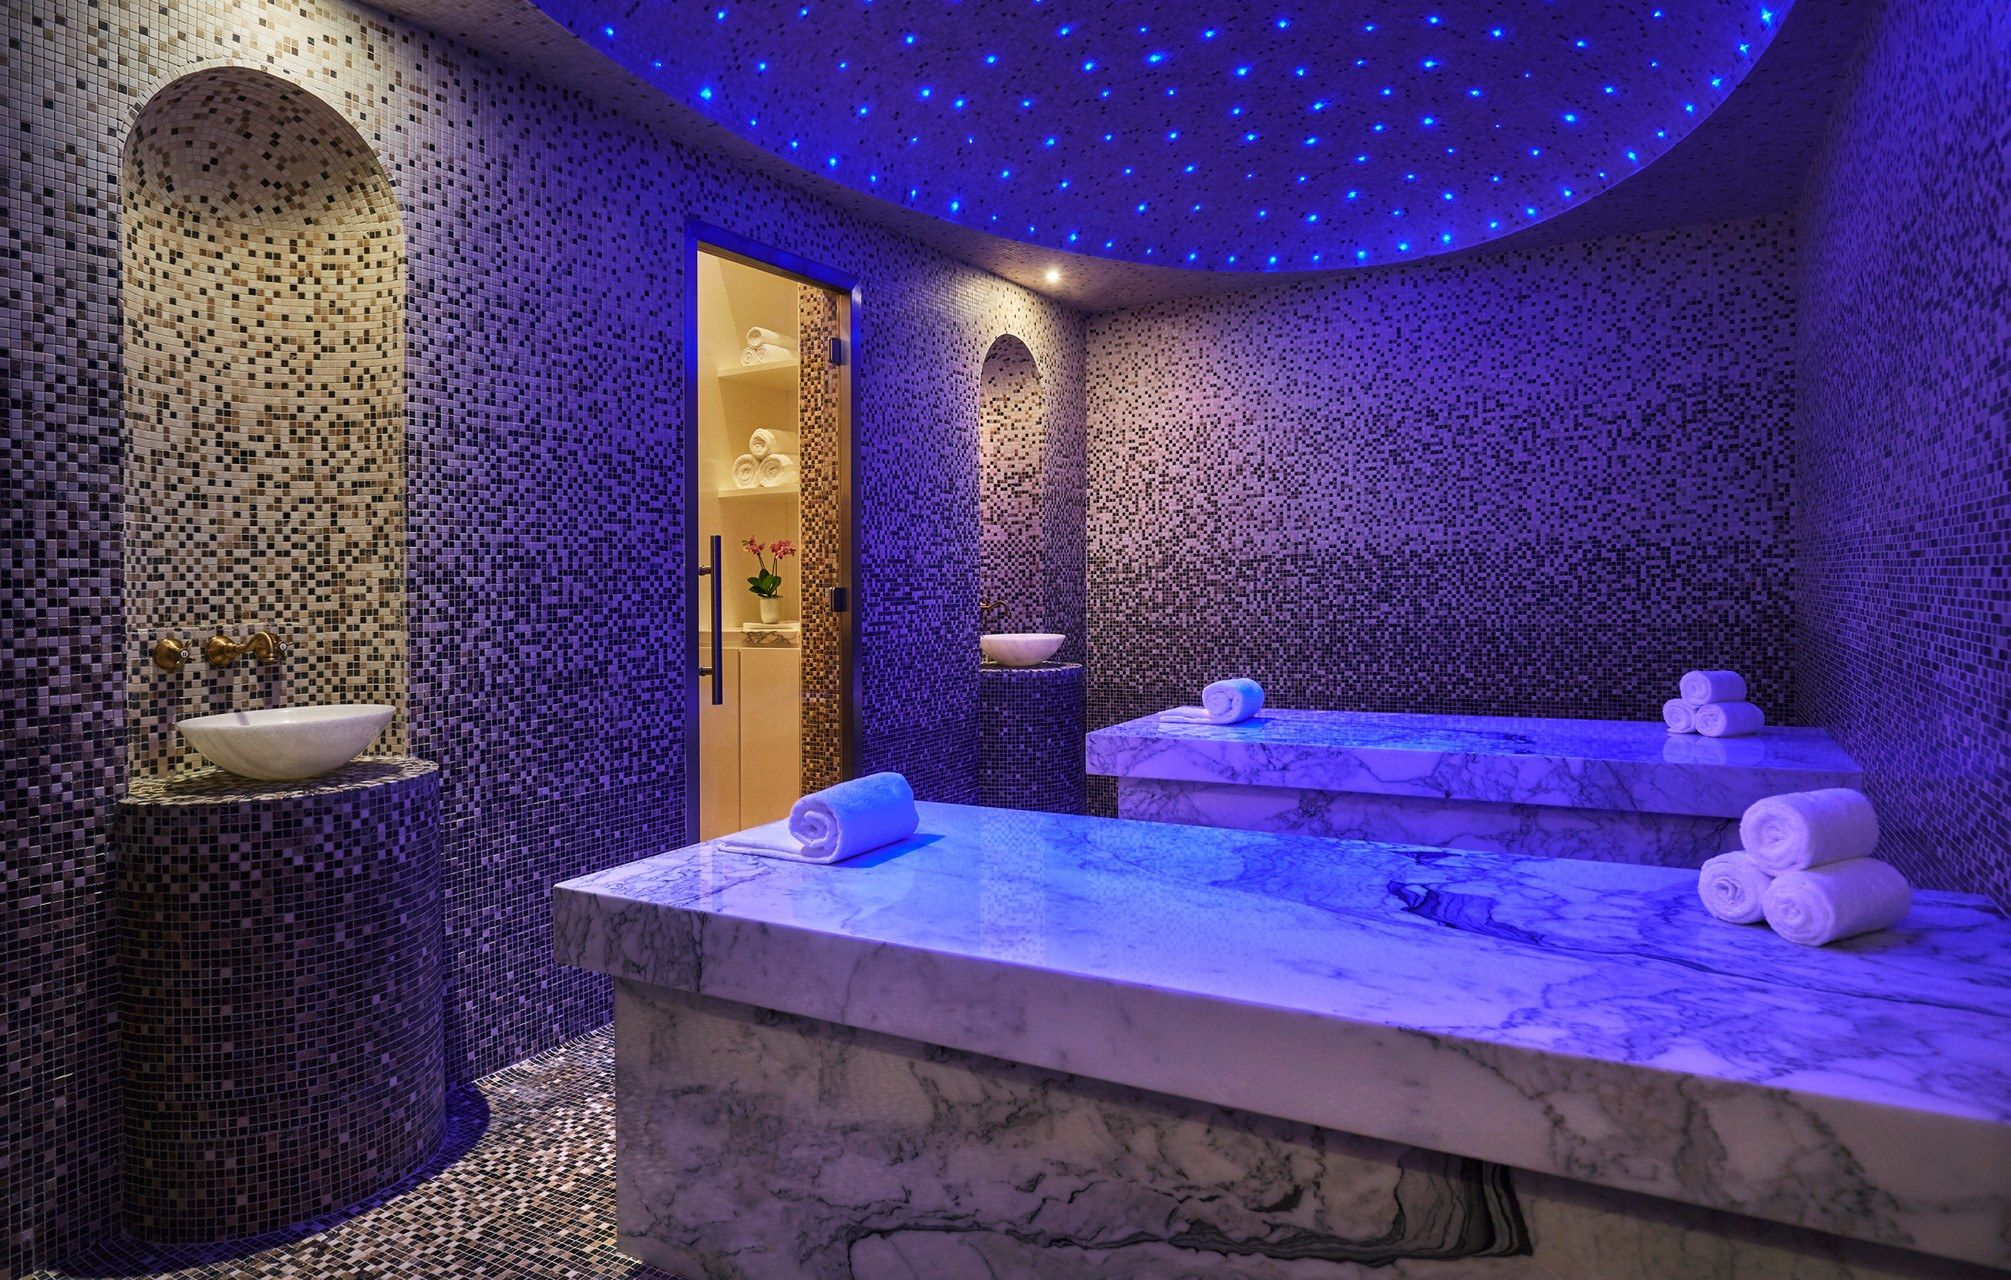 10 New High Design Spas For The Ultimate Indulgence Diseno De Spa Arquitectura Disenos De Unas